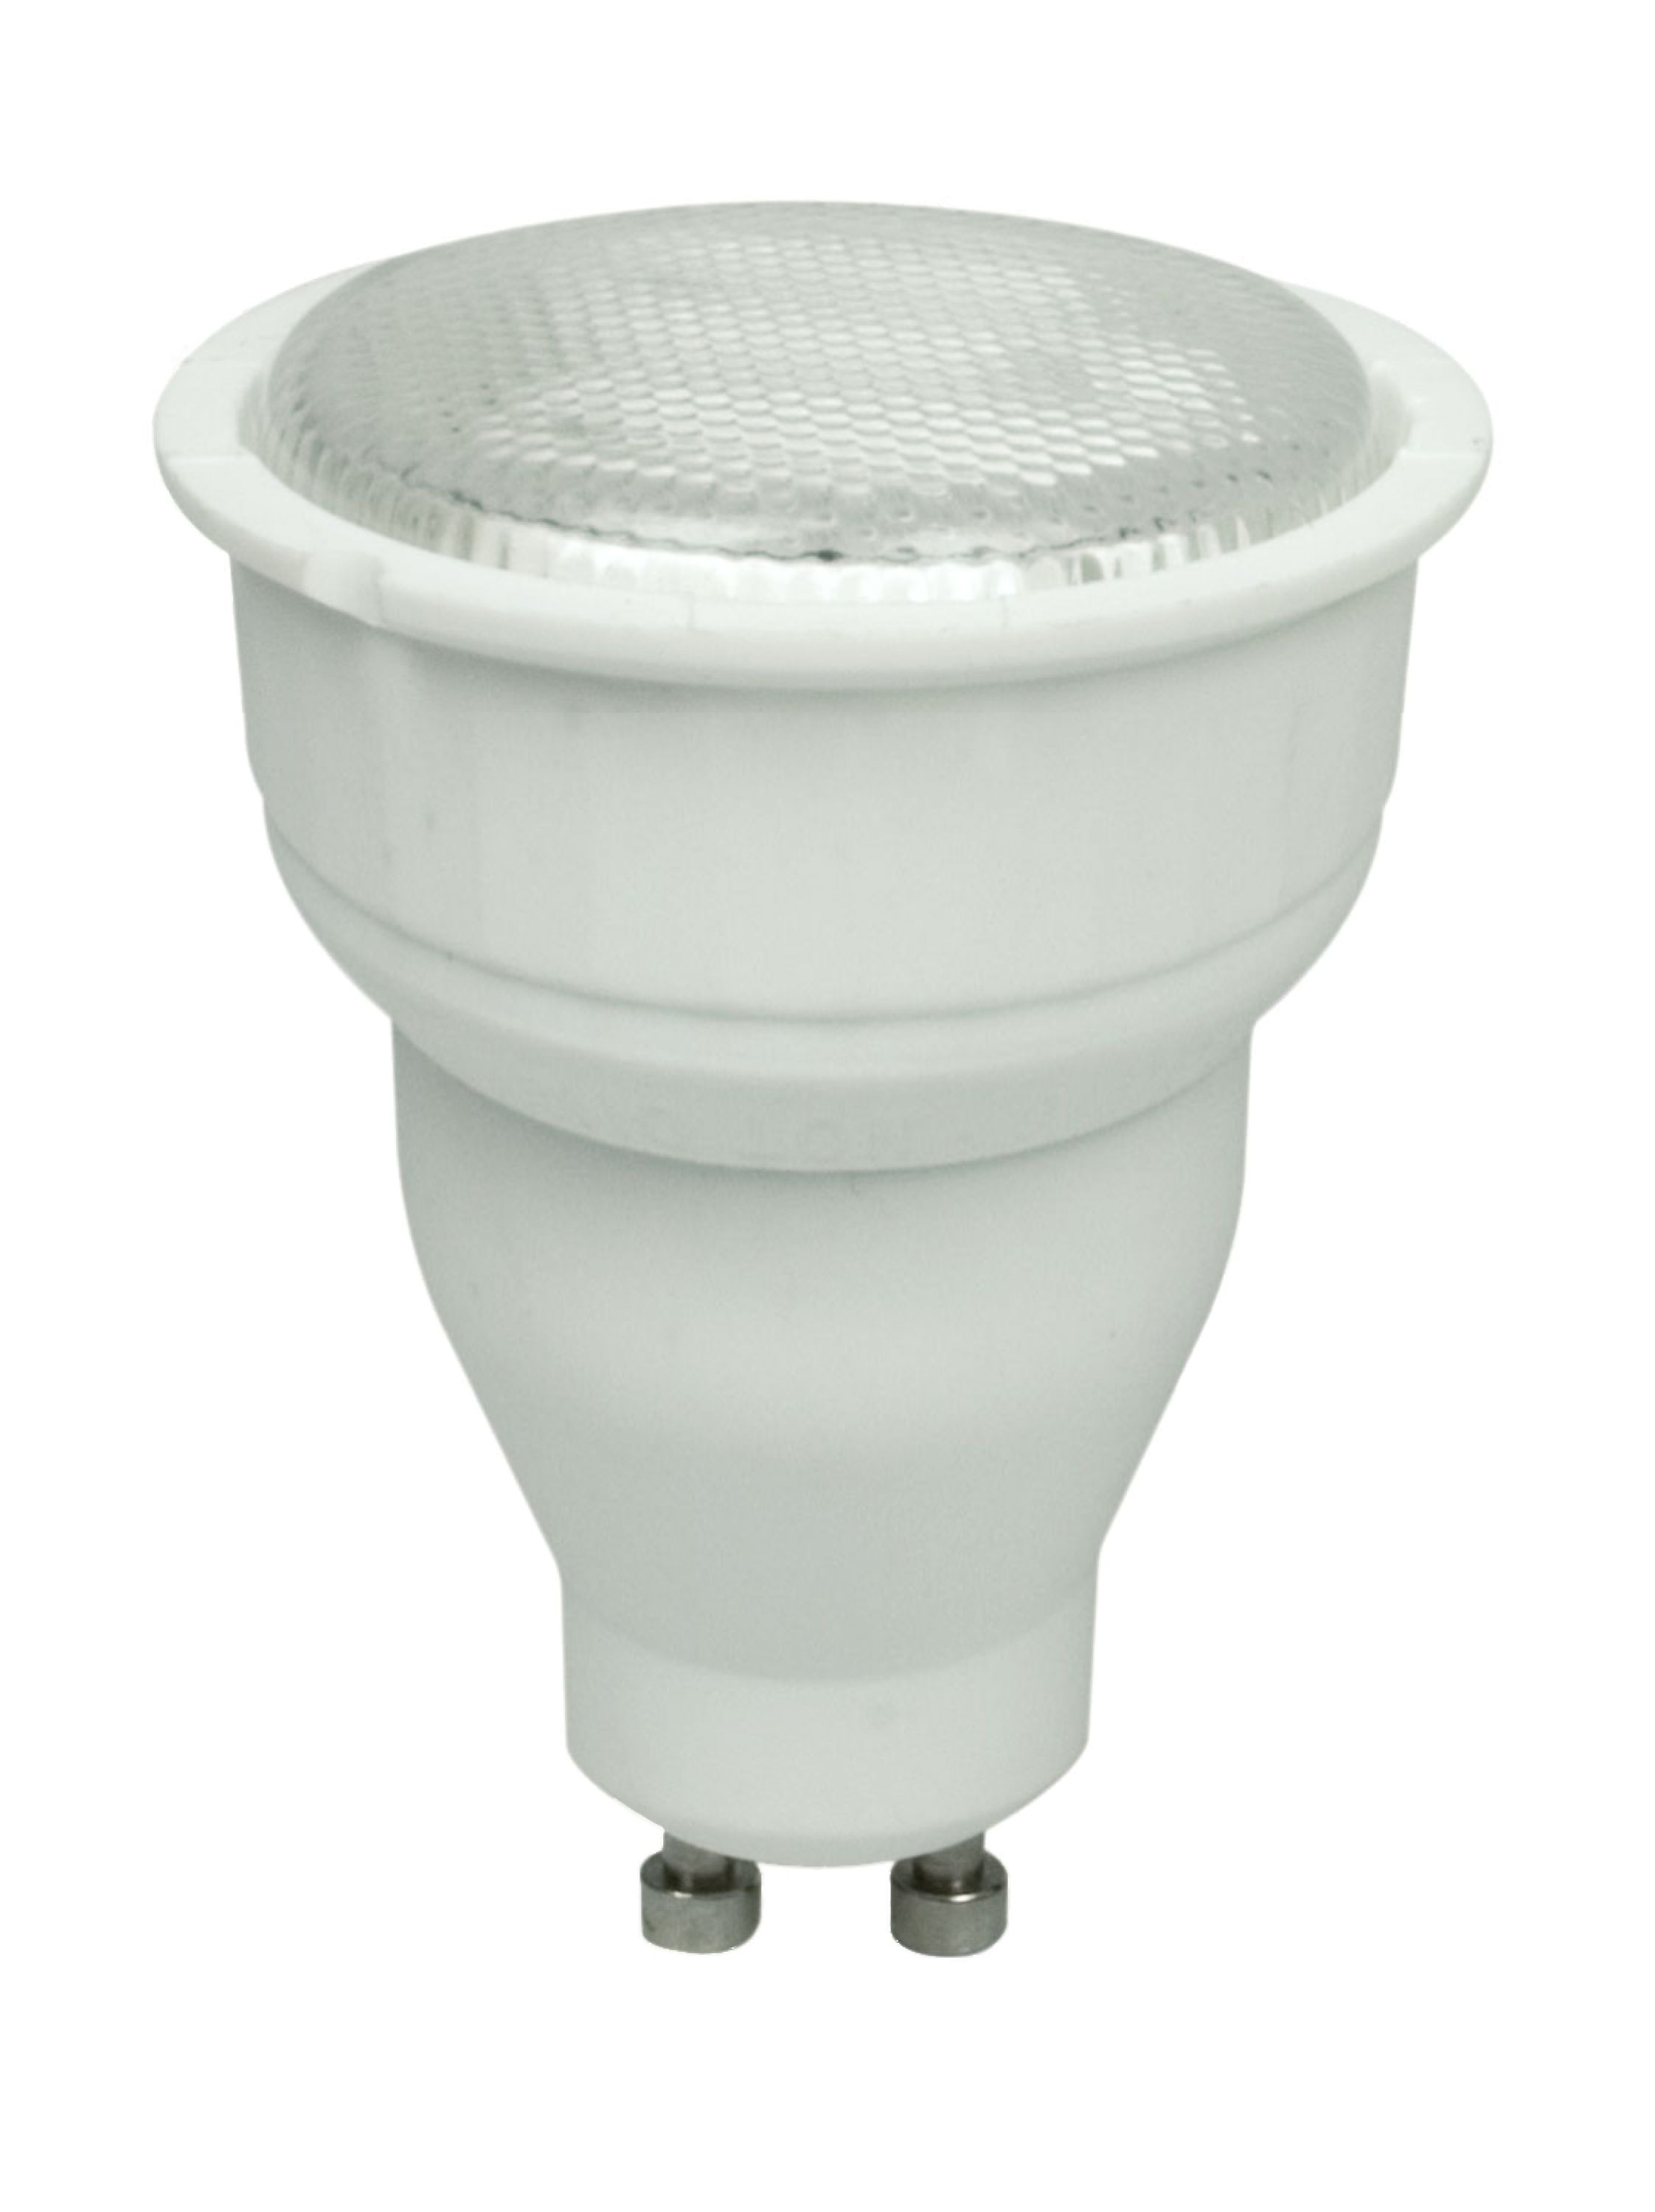 GU10 Downlight (long body, chrome, excl. bulb)